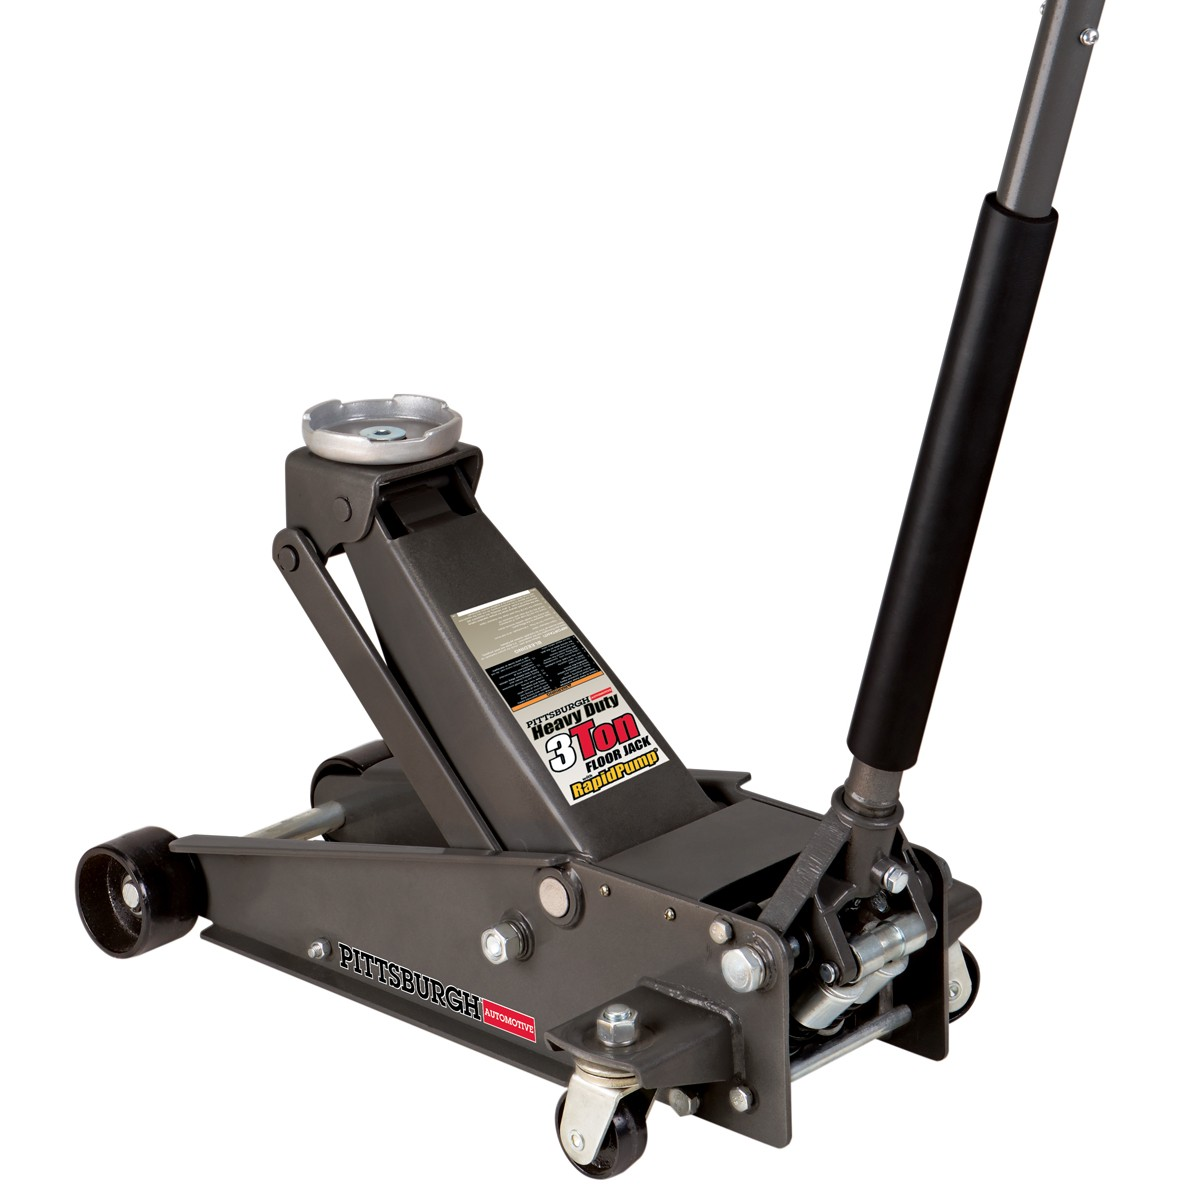 3 ton Steel Heavy Duty Service Jack with Rapid Pump®